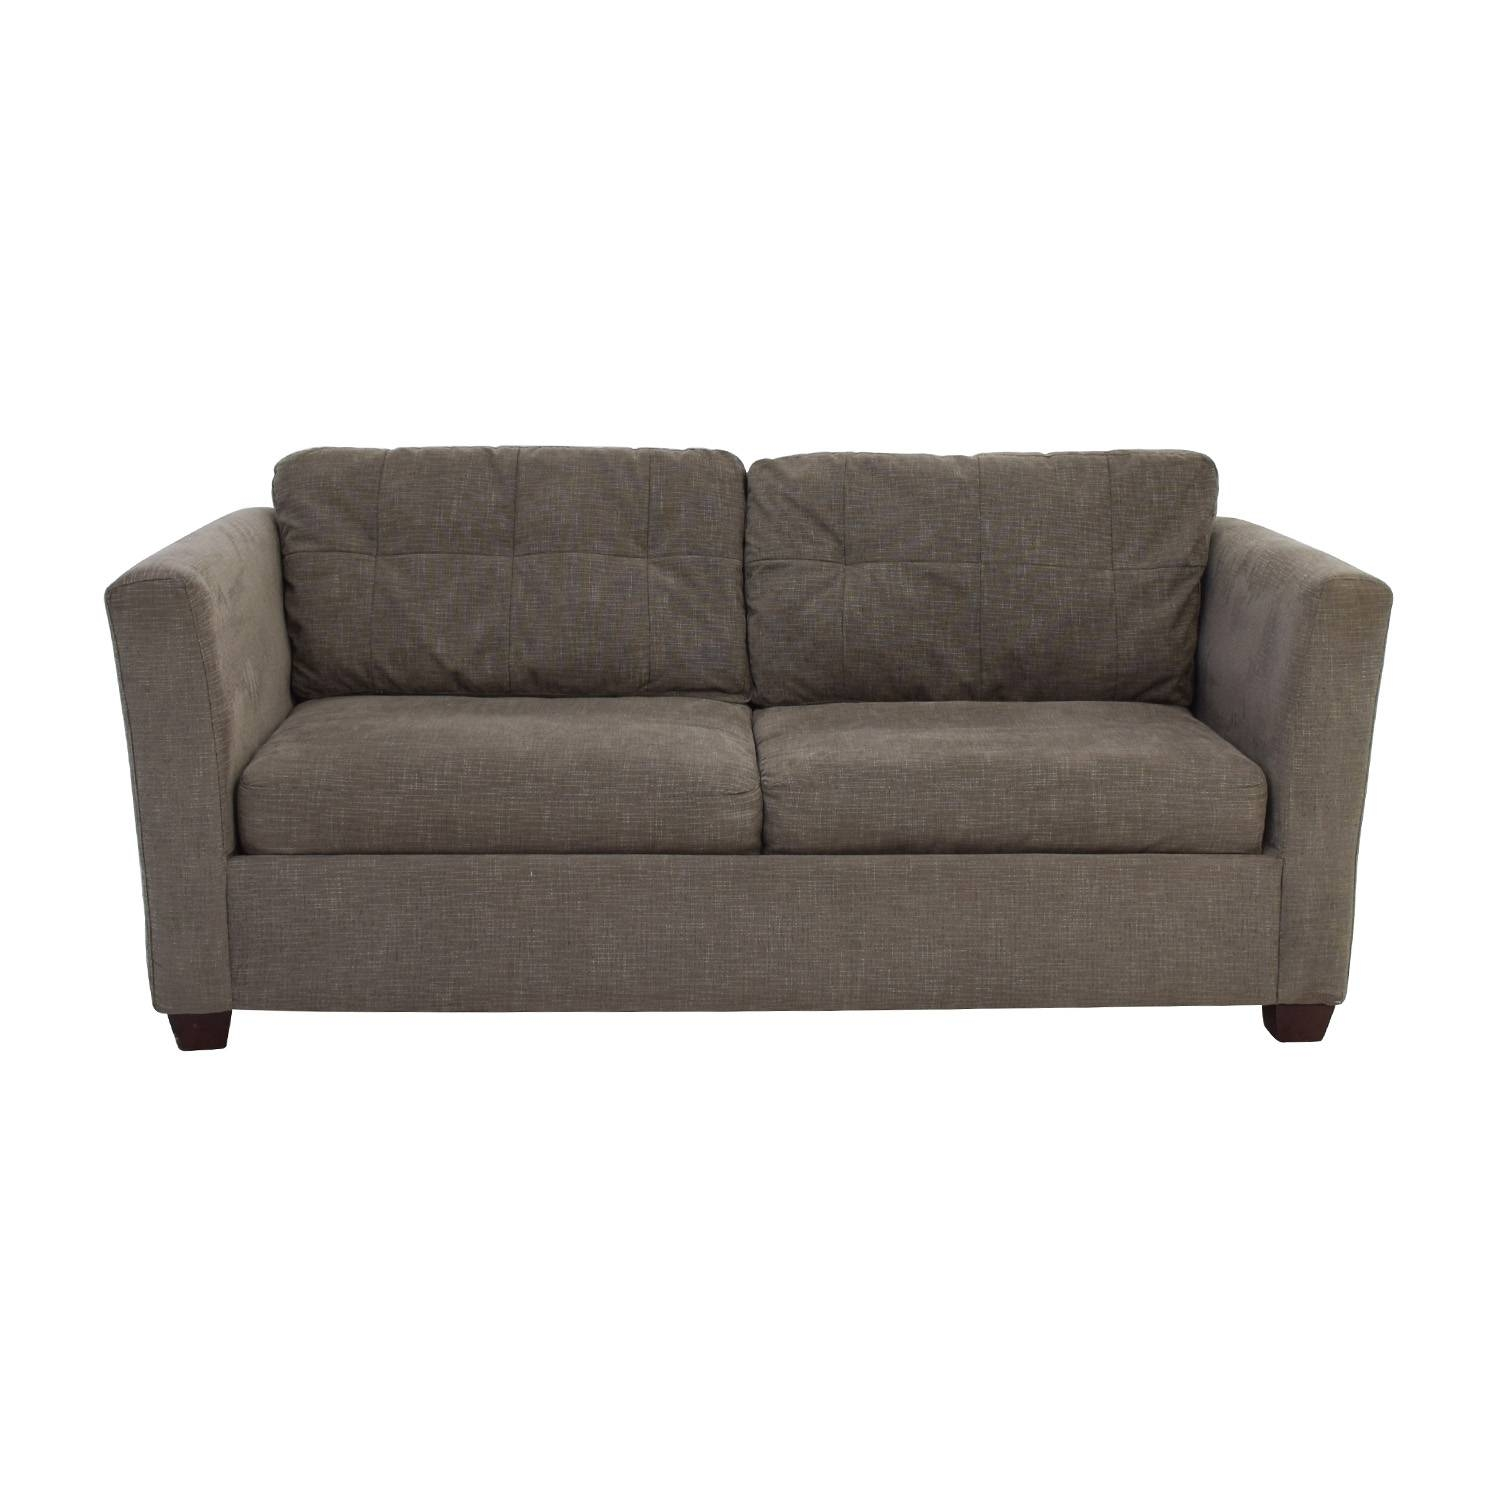 58% Off - Bauhaus Bauhaus Grey Queen Sleeper Sofa / Sofas regarding Bauhaus Sectional Sofas (Image 1 of 30)